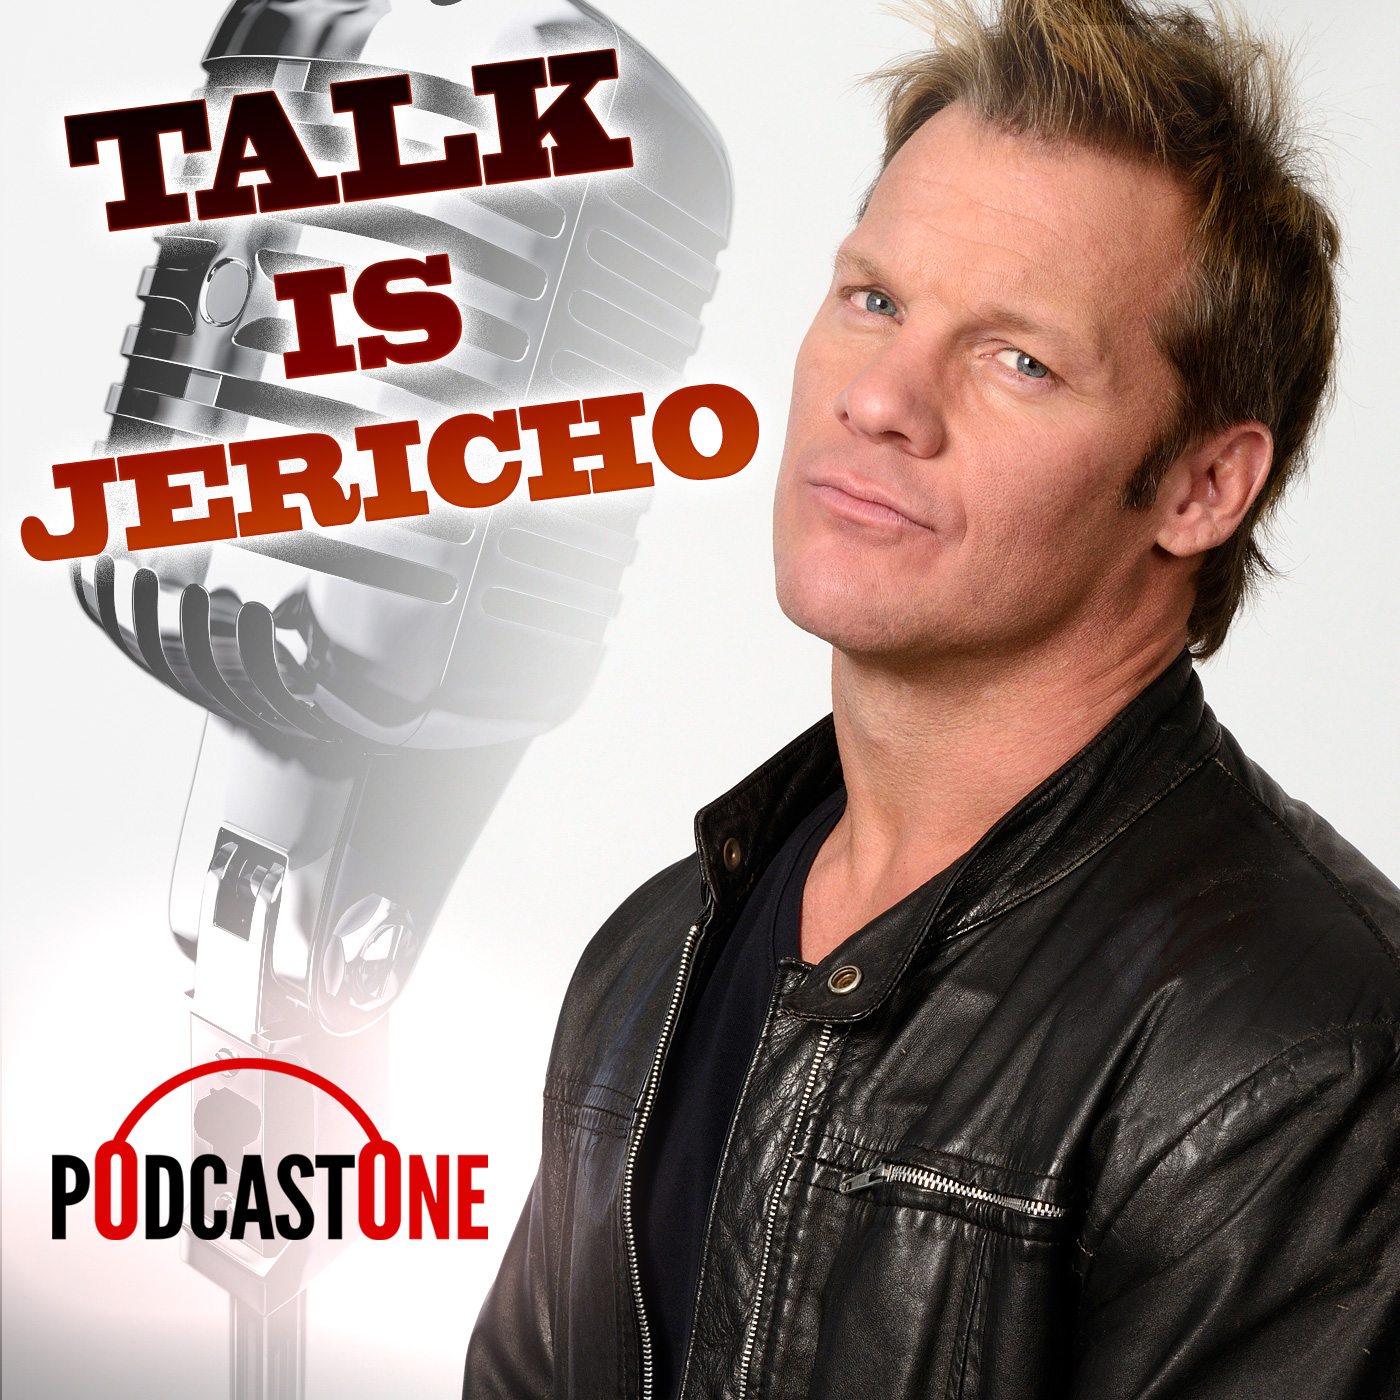 Talk Is Jericho (podcast)